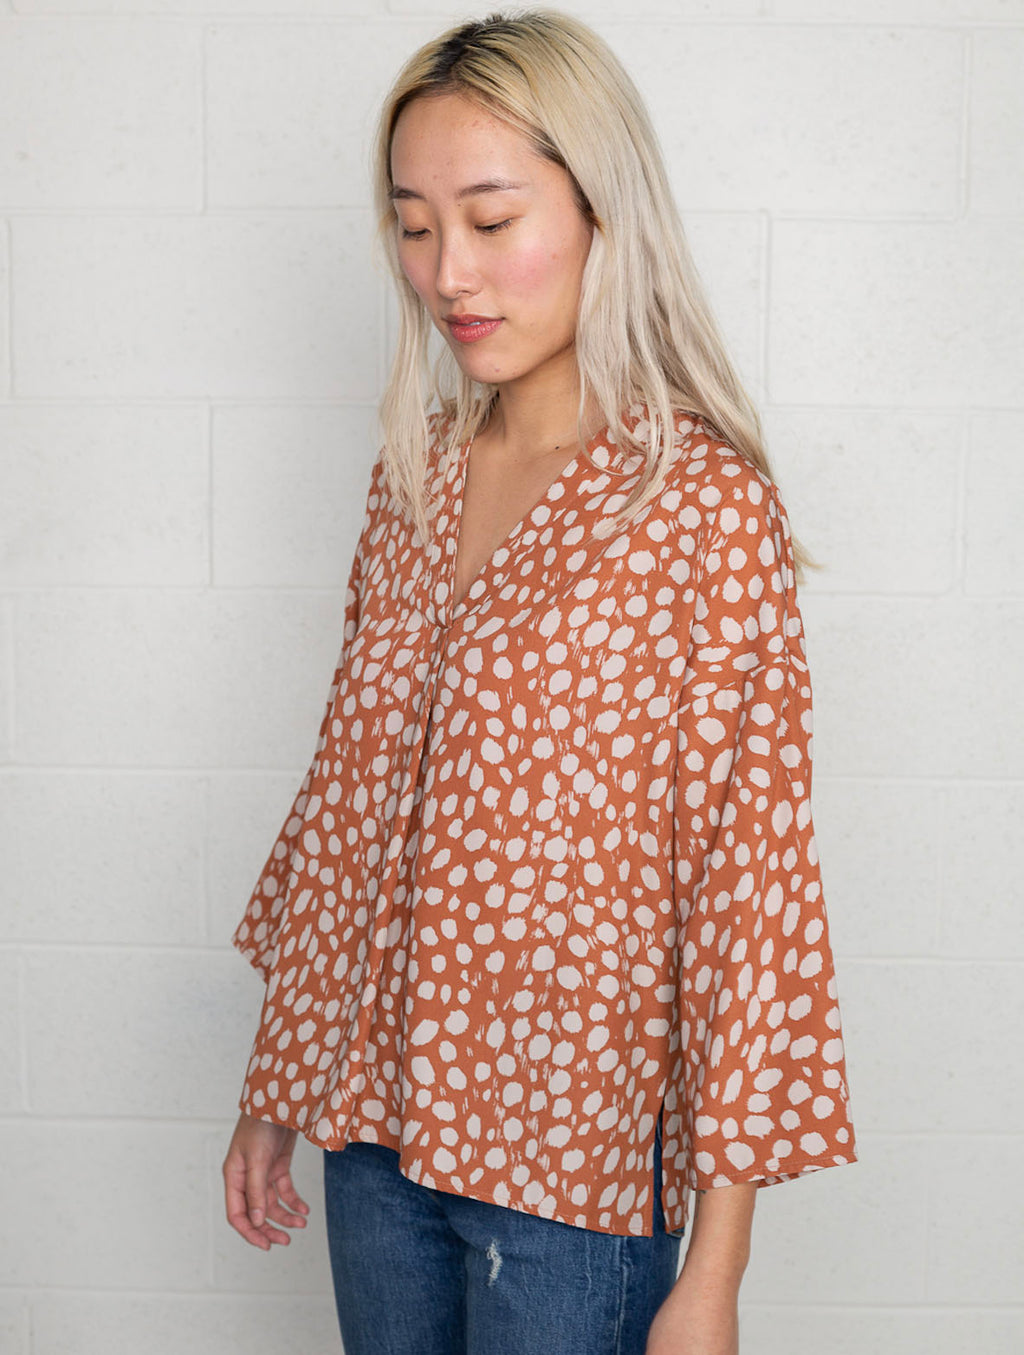 No Less Than V Neck Blouse in Rust Animal Print